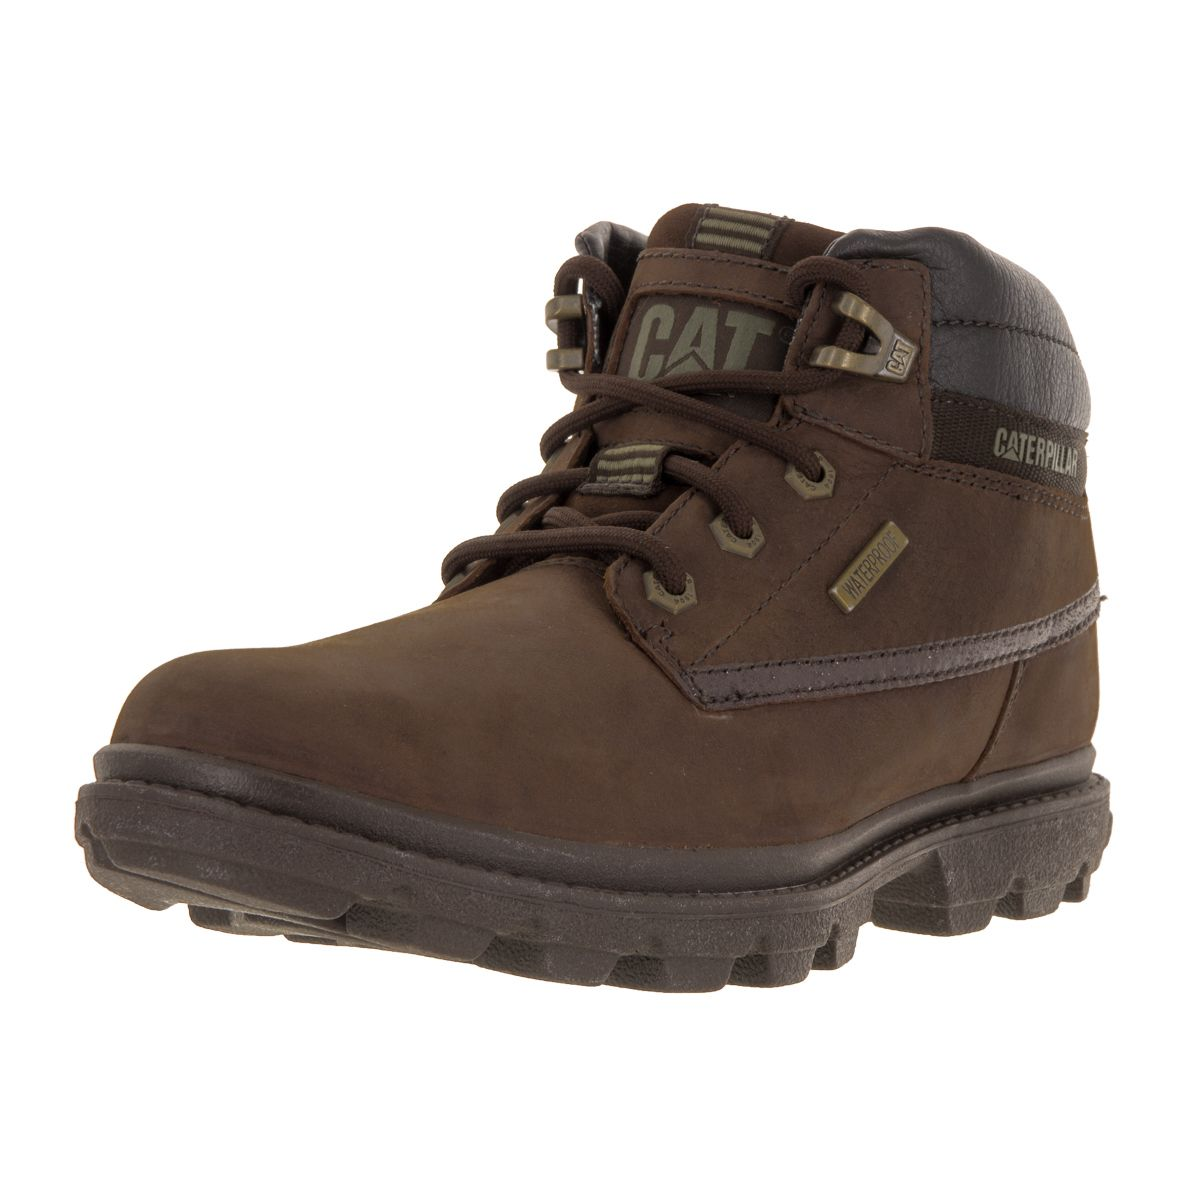 Caterpillar Men's Grady WP Rope/ Boot